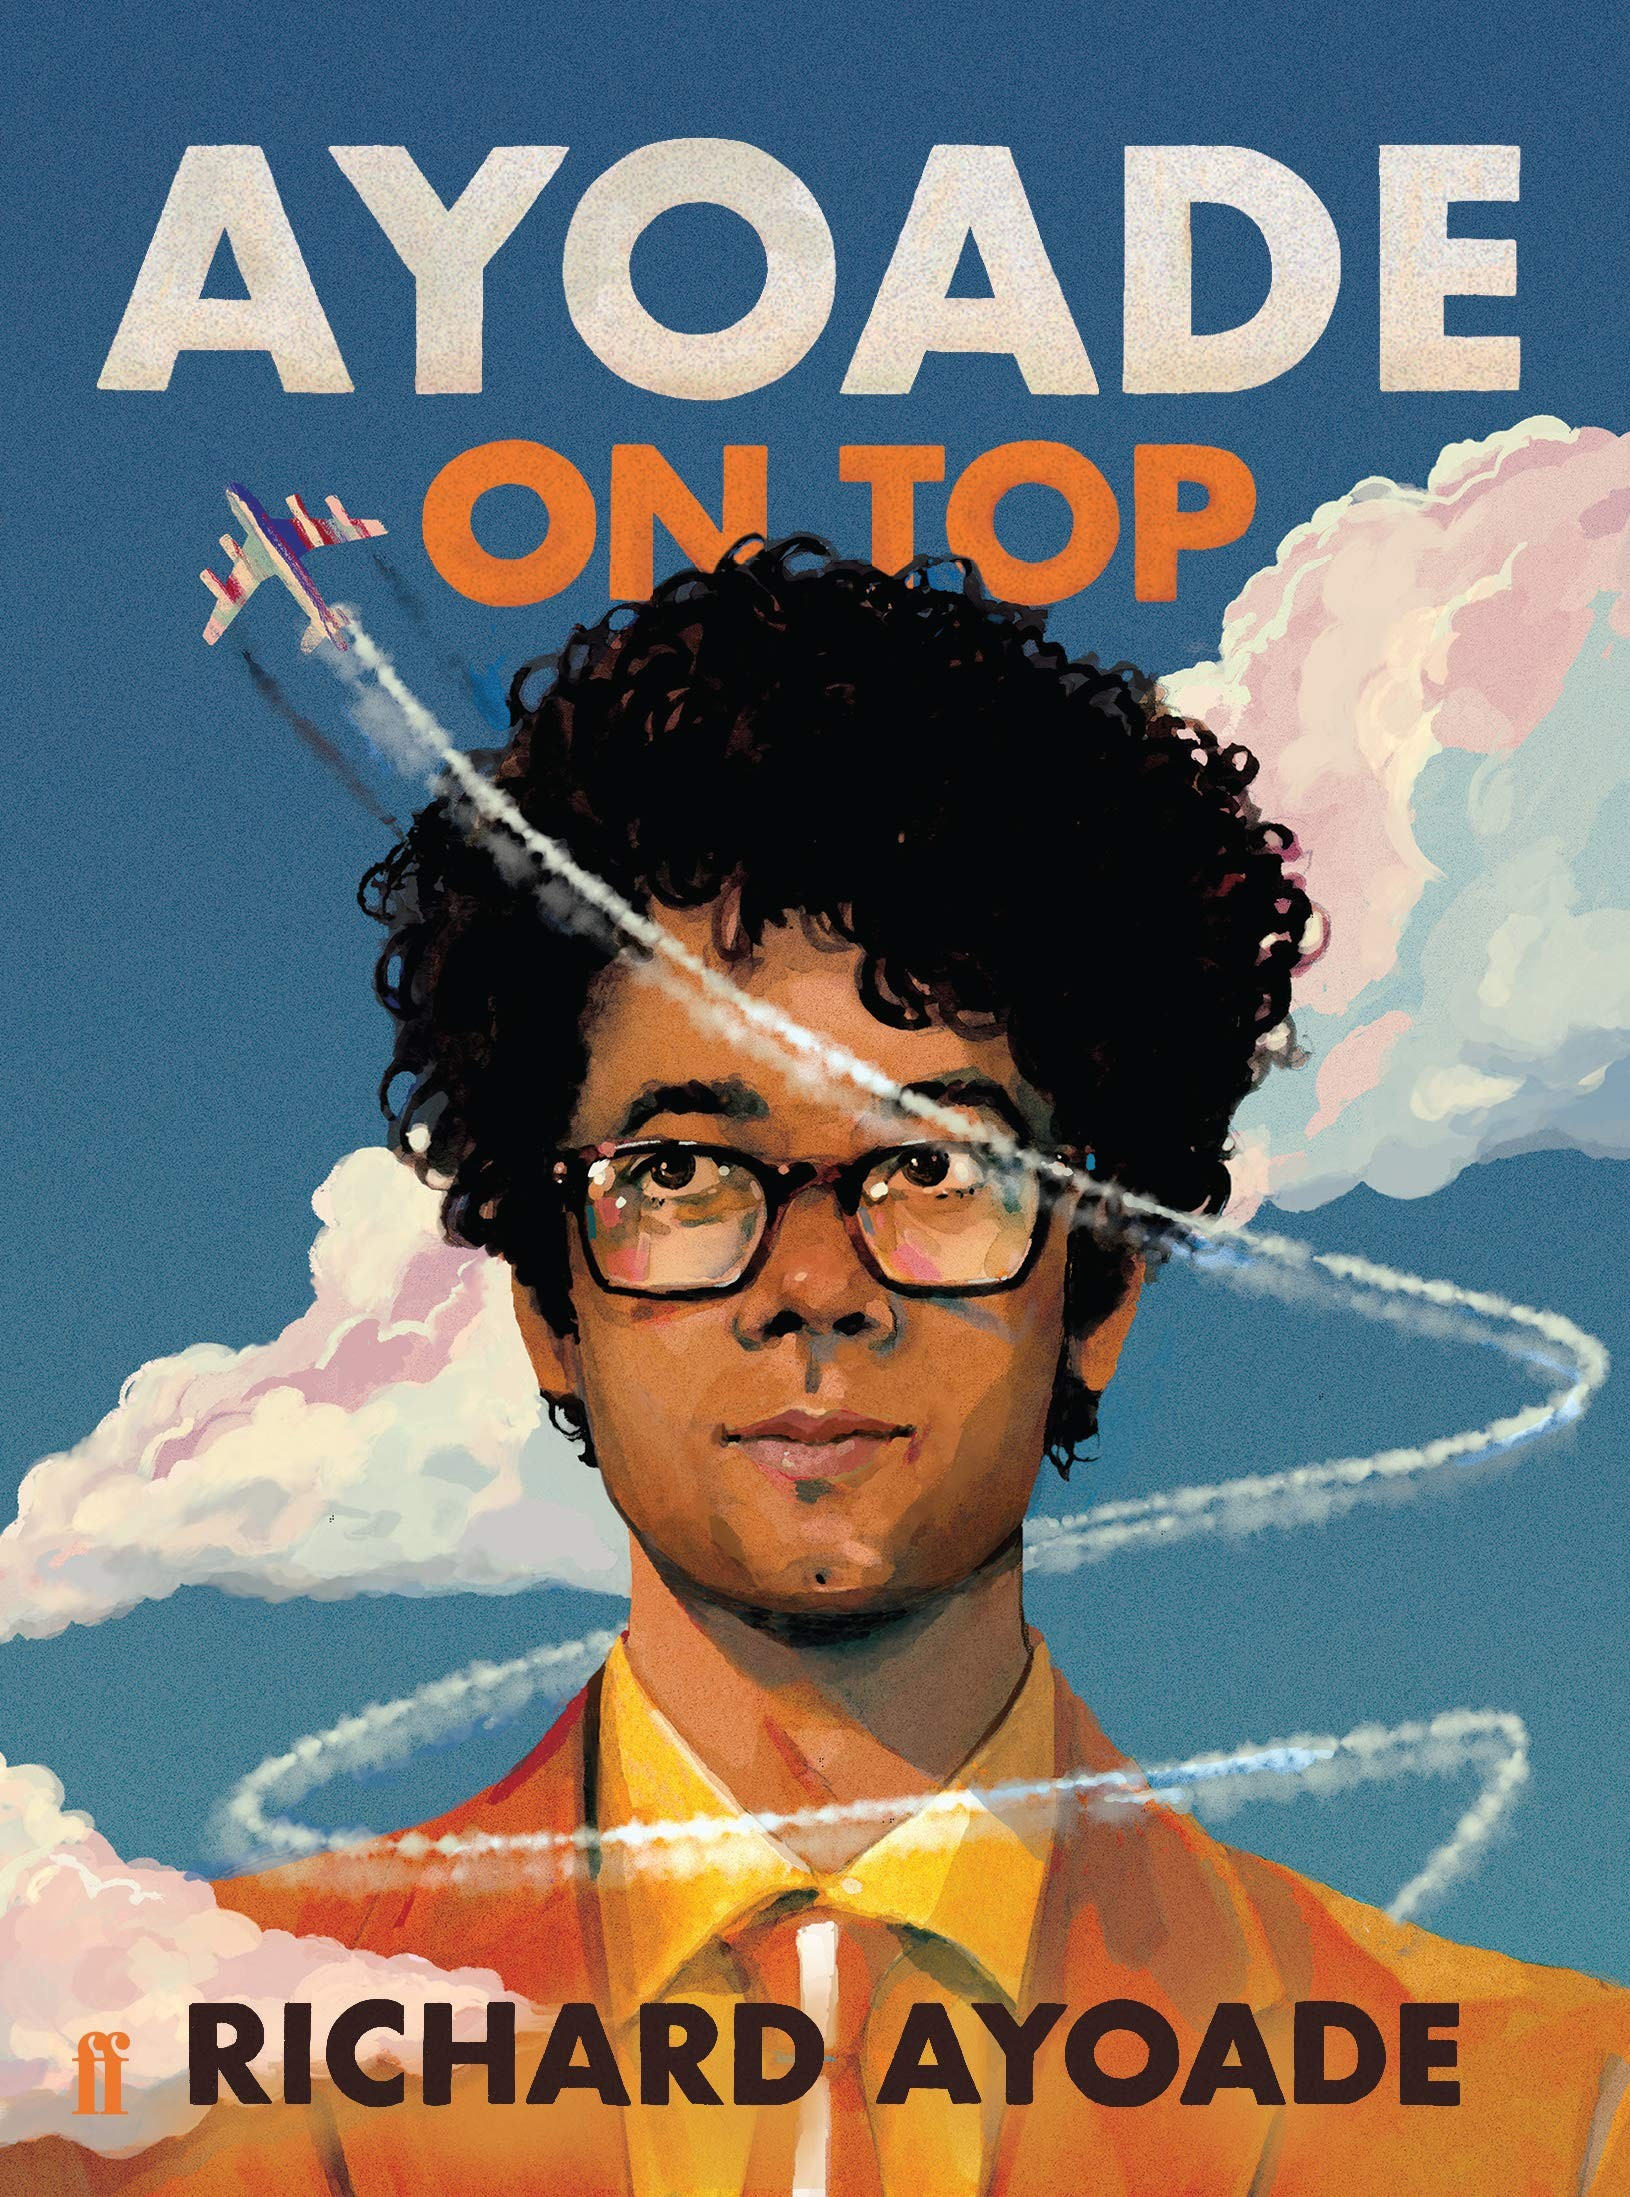 VIEW FROM THE TOP w/ RICHARD AYOADE